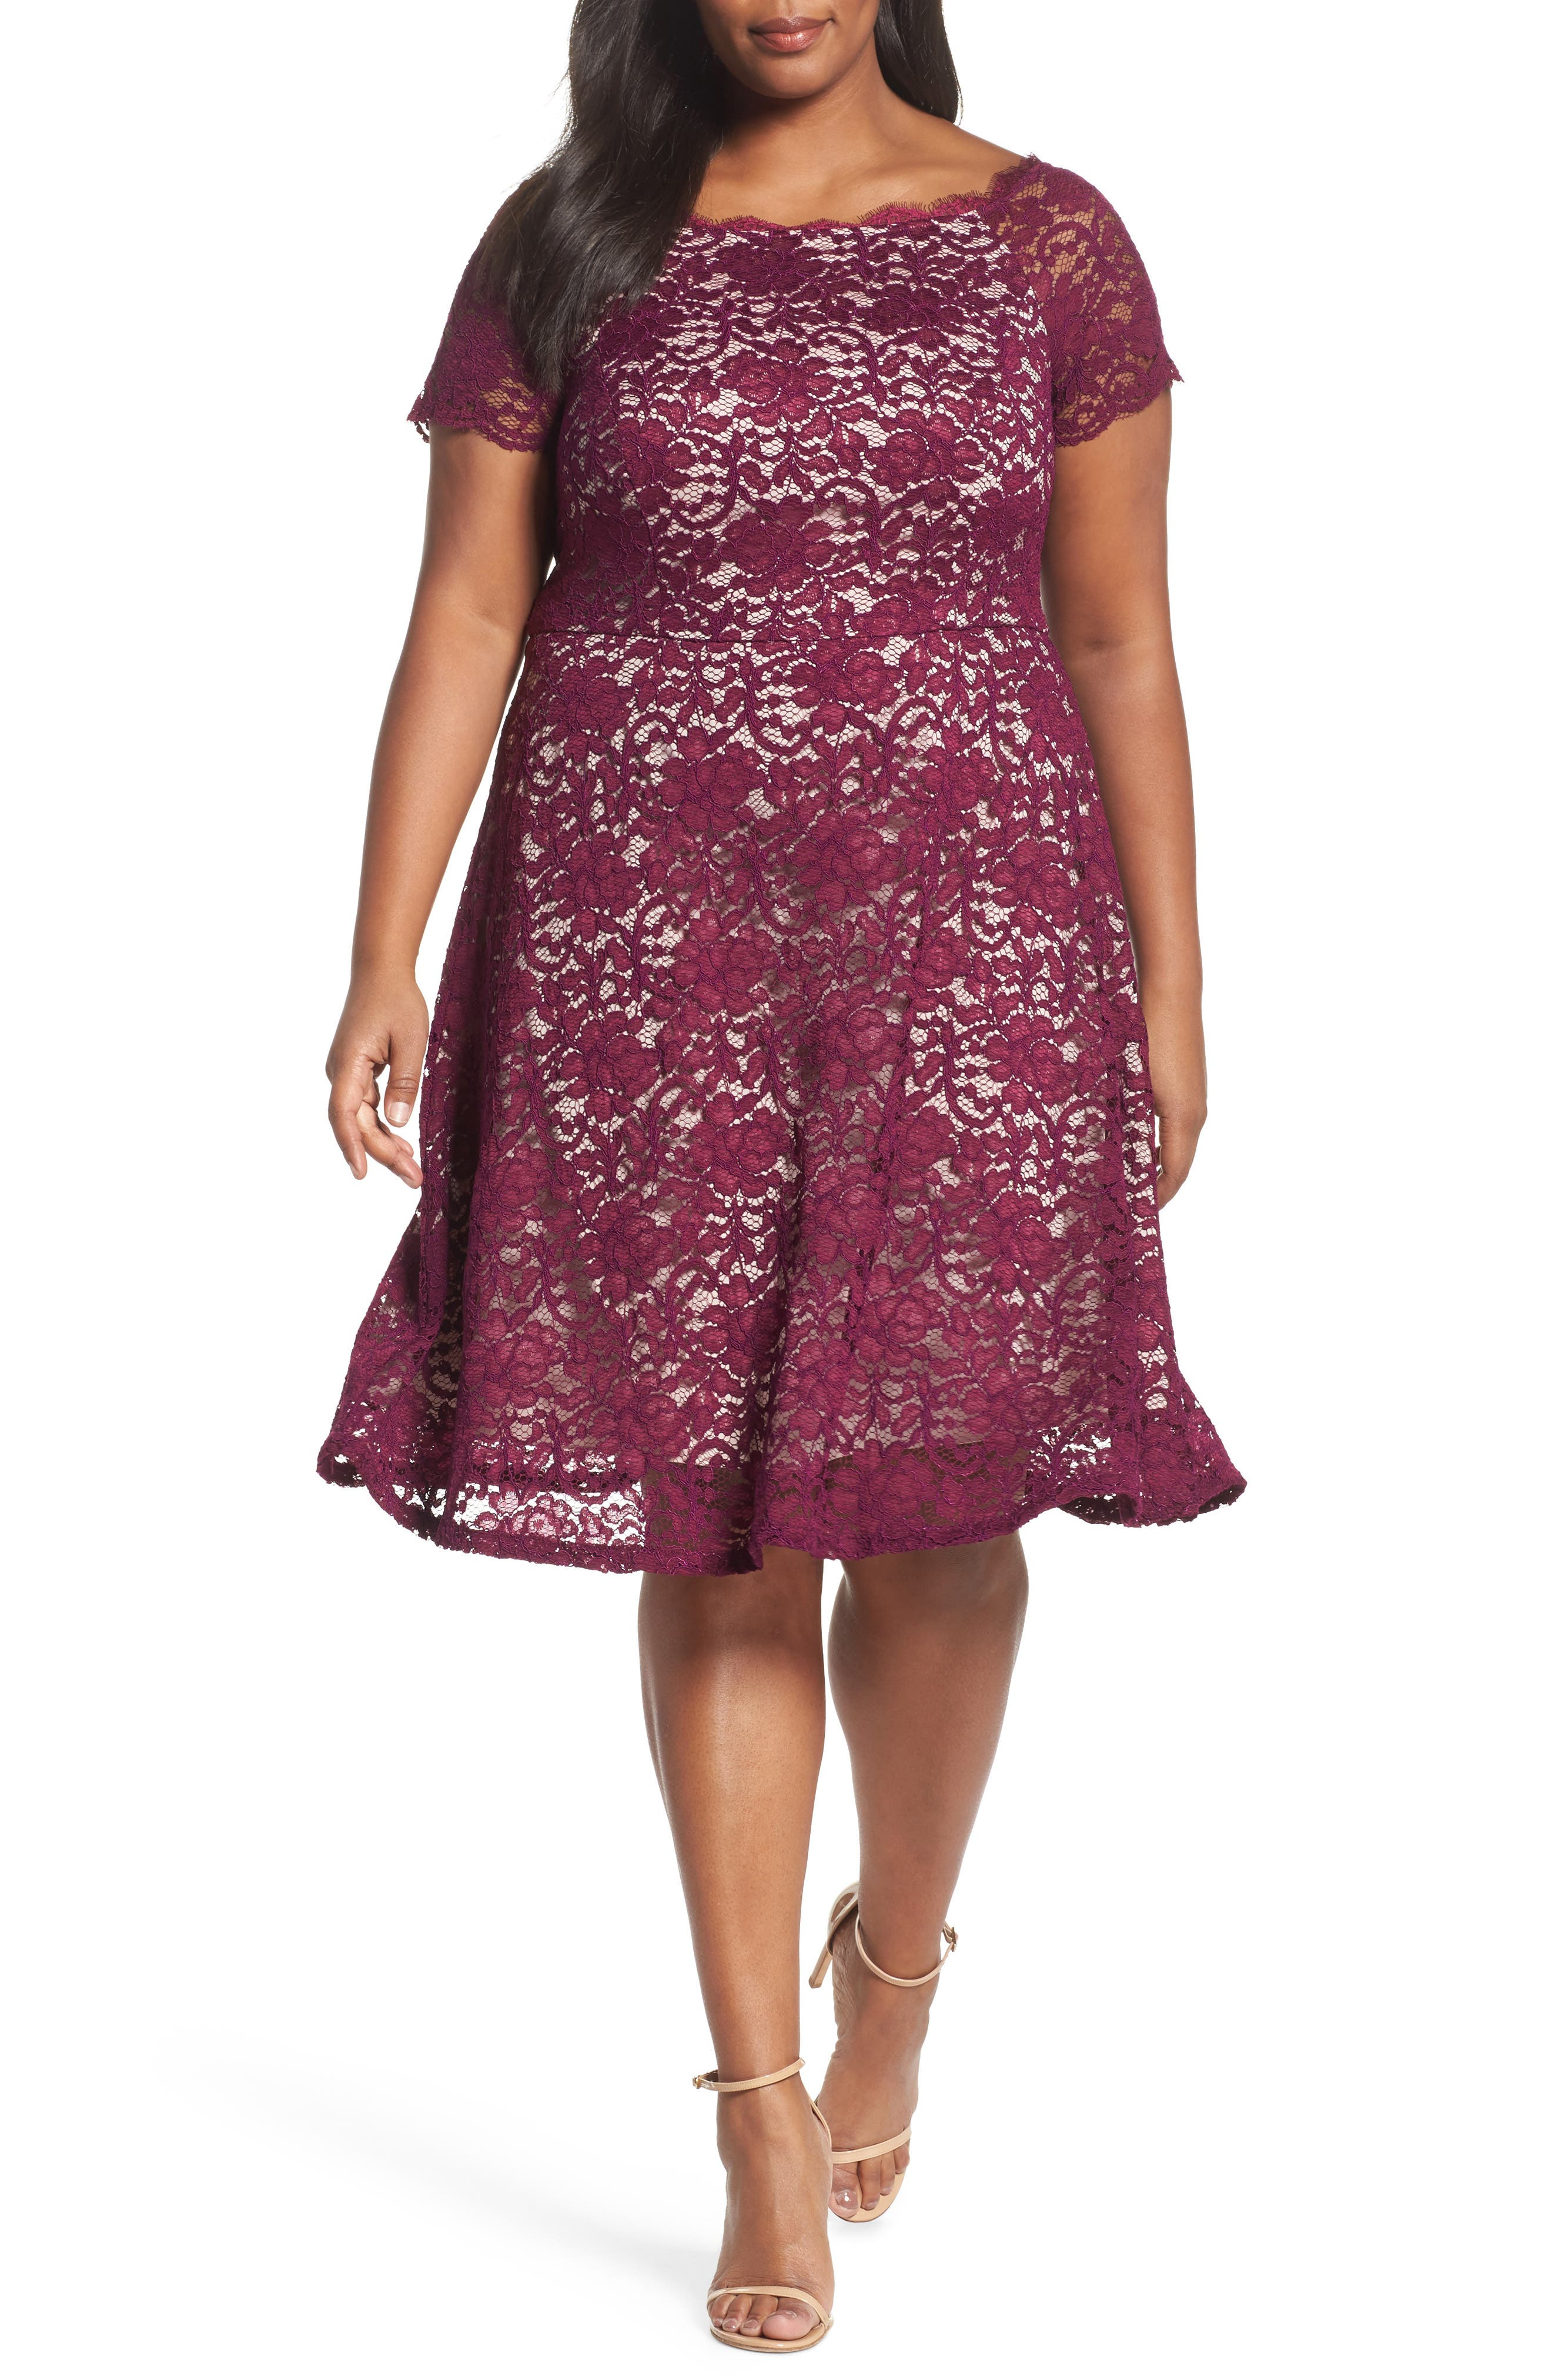 Alternate Image 1 Selected - Adrianna Papell Fit & Flare Lace Dress (Plus Size)